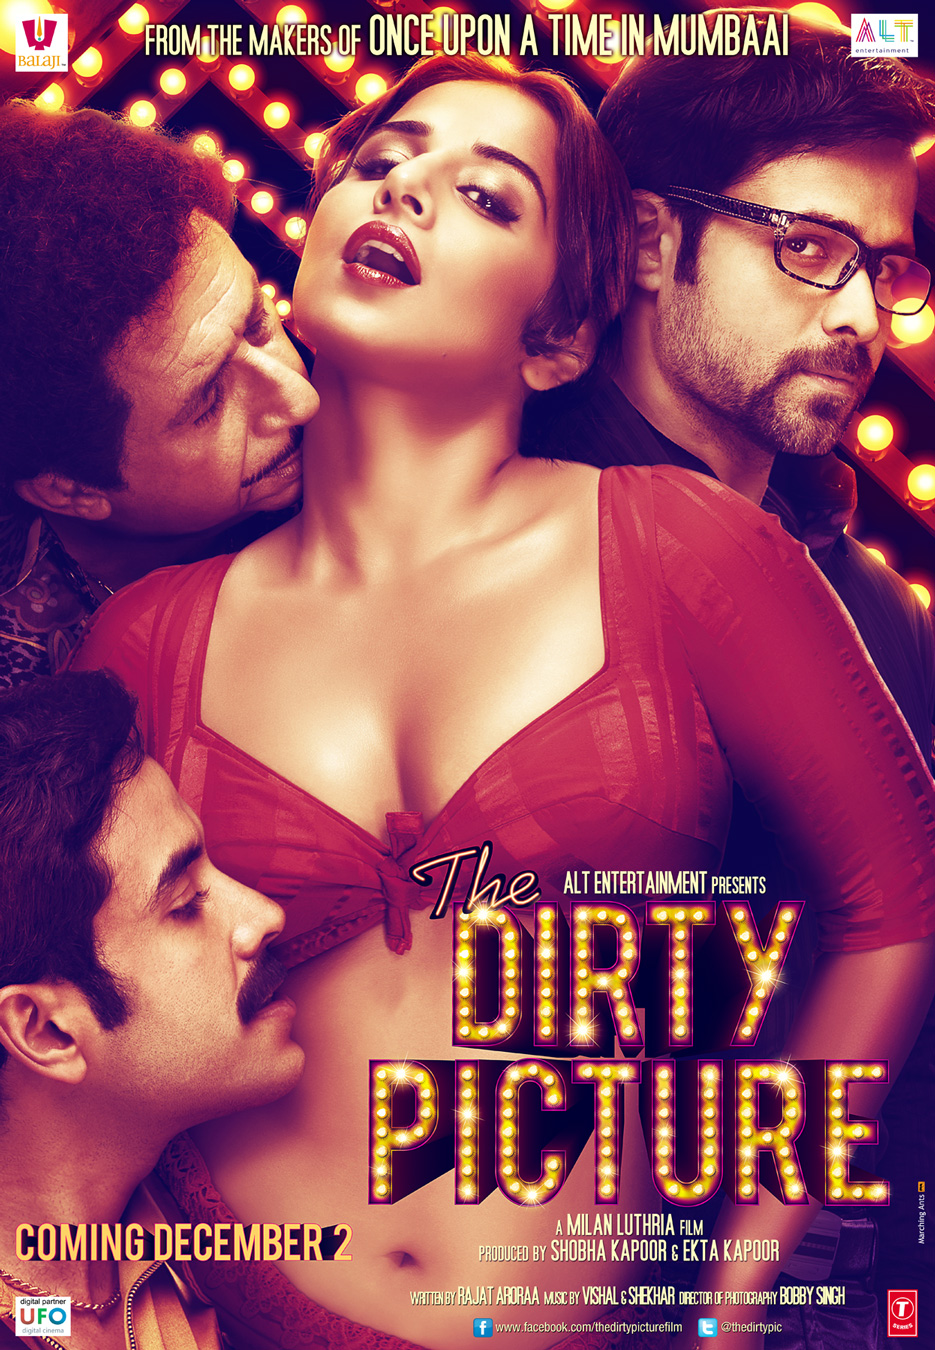 what is dirty about the dirty picture? – vinod narayan